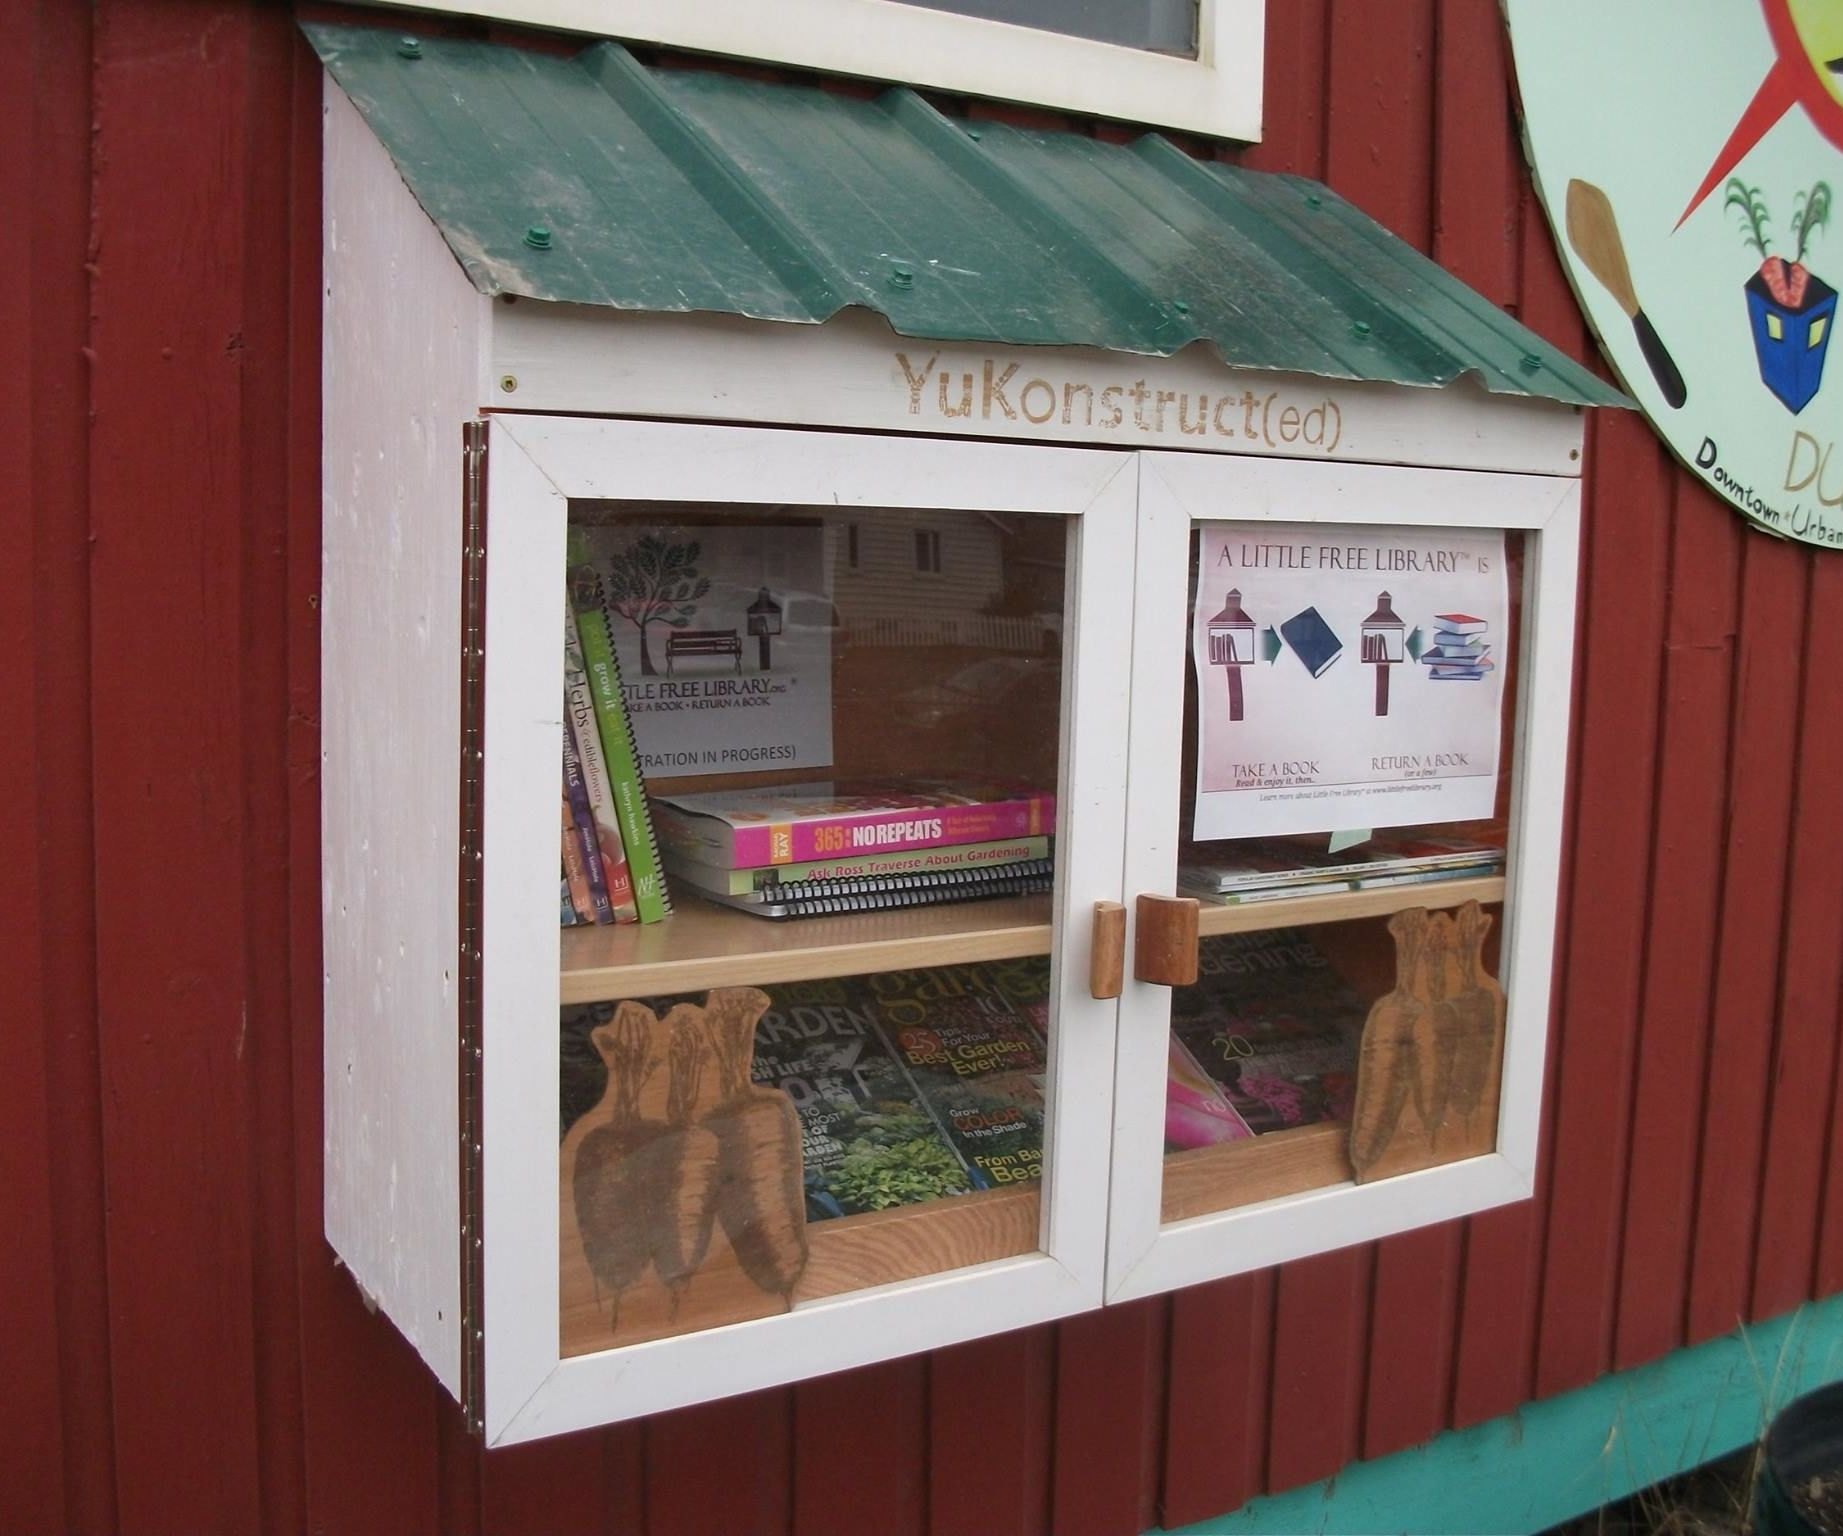 Urban Gardeners' Little Free Library